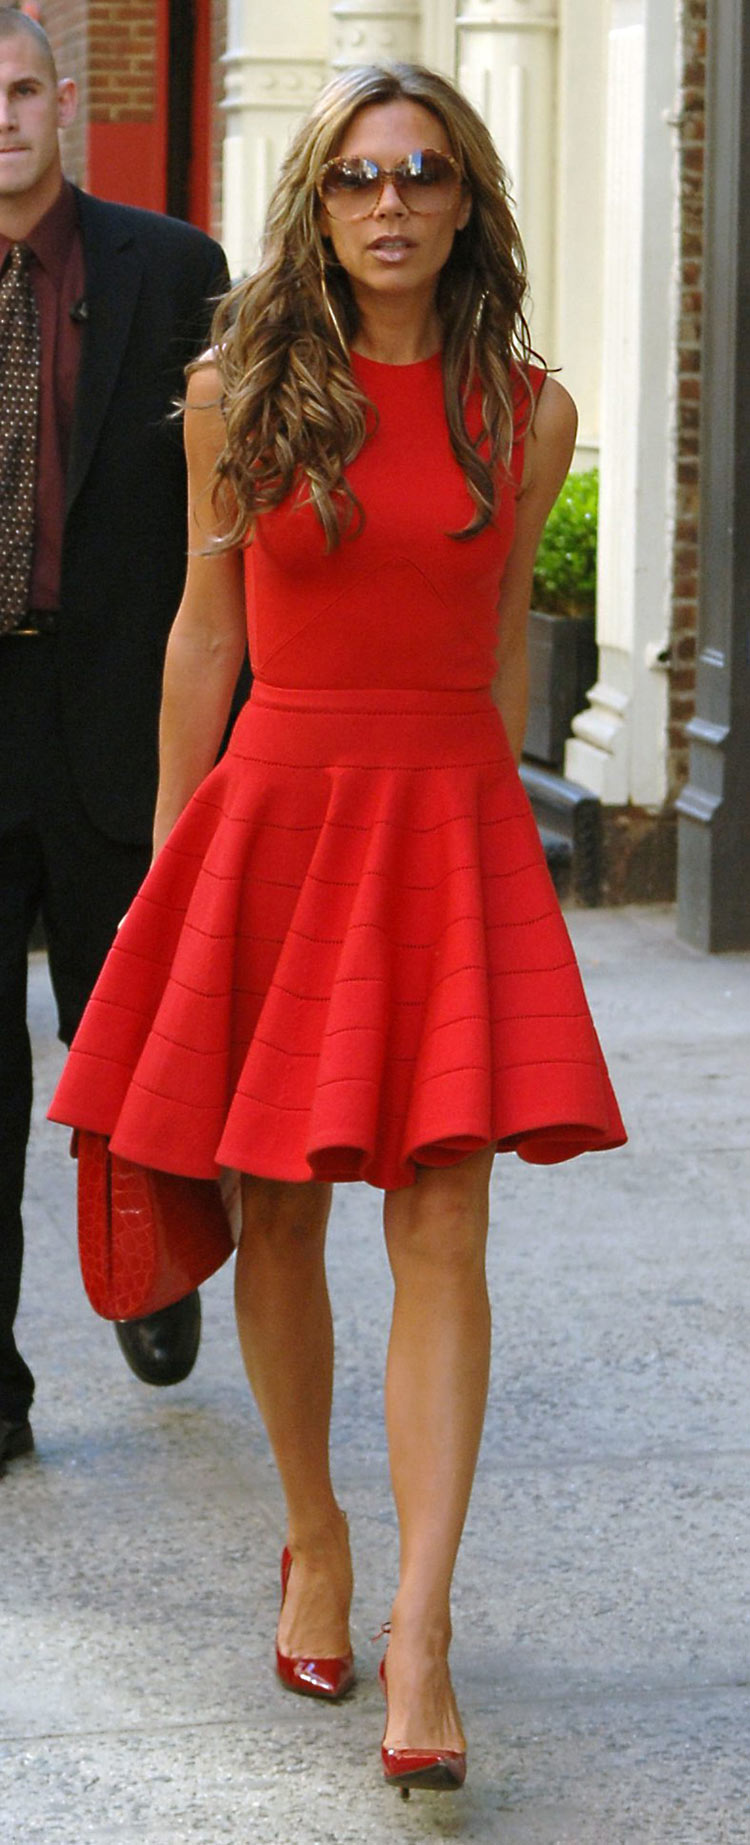 THE RED ANATOMY: A detailed anaylsis of how to wear ...